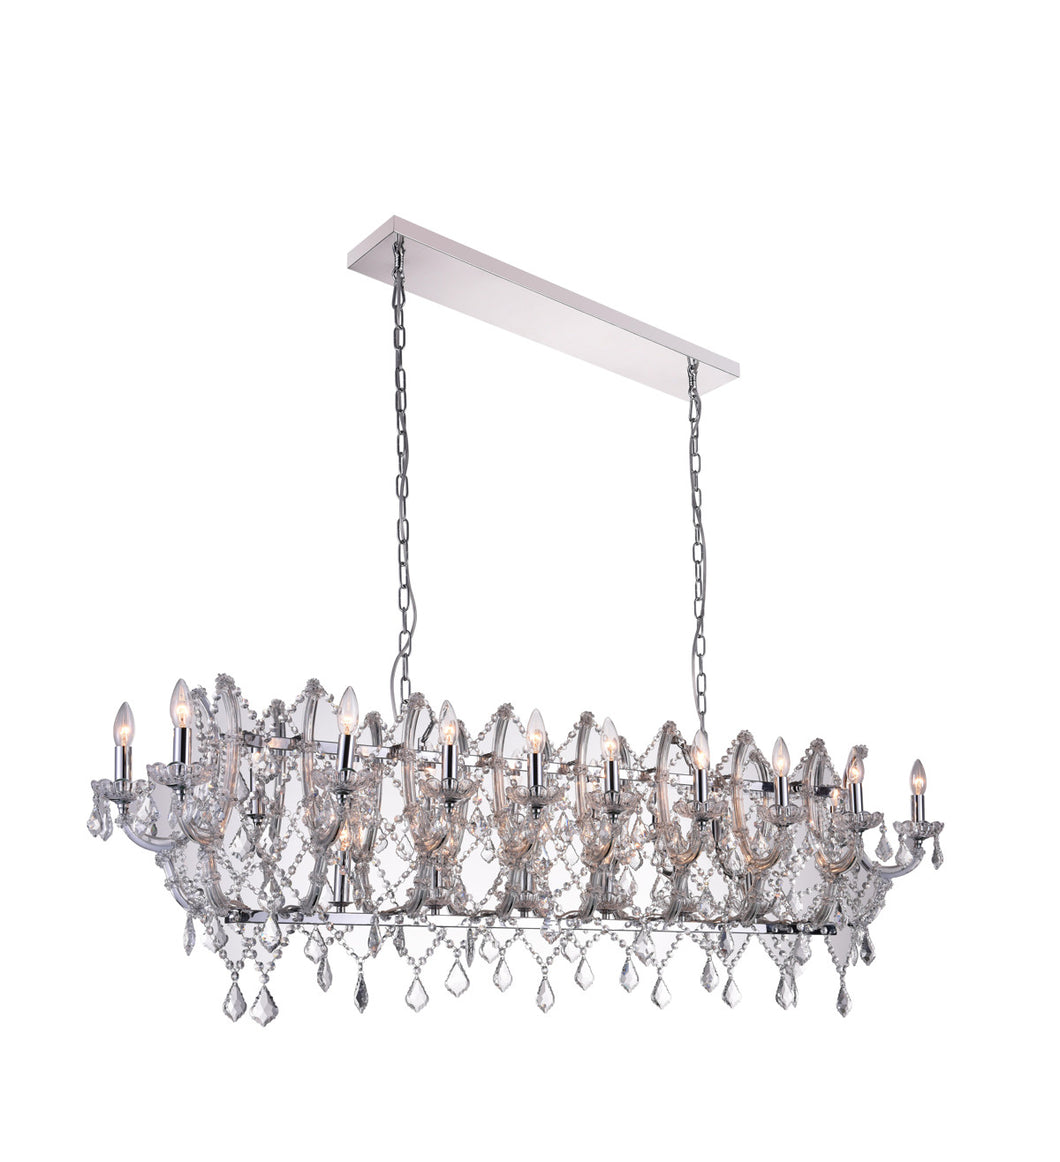 24 Light Candle Chandelier with Chrome finish